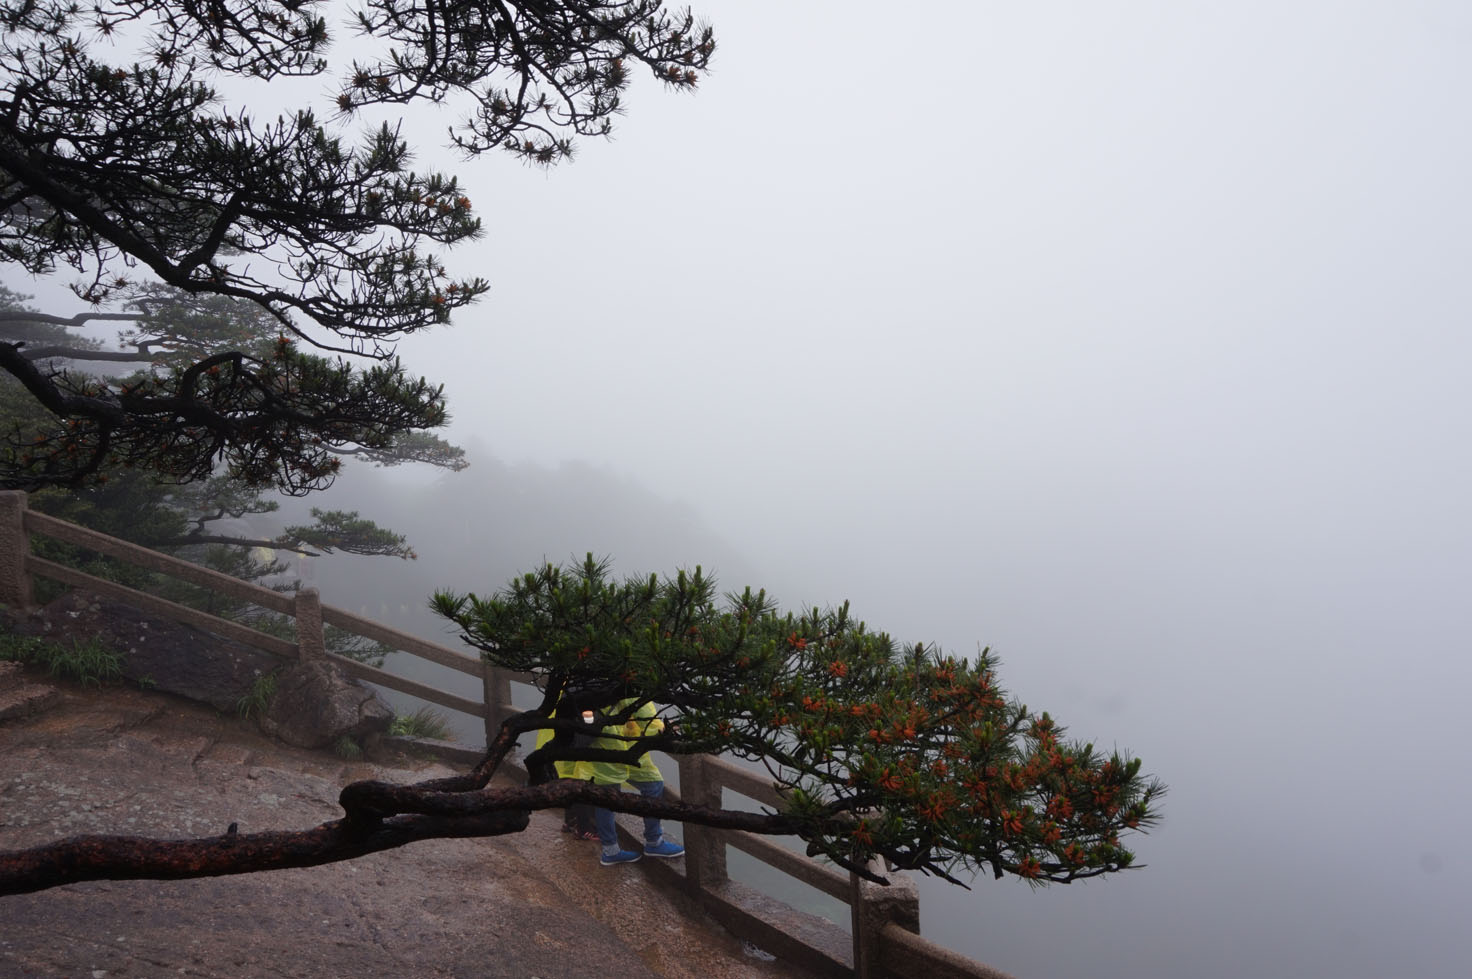 We could literally see nothing in Huangshan